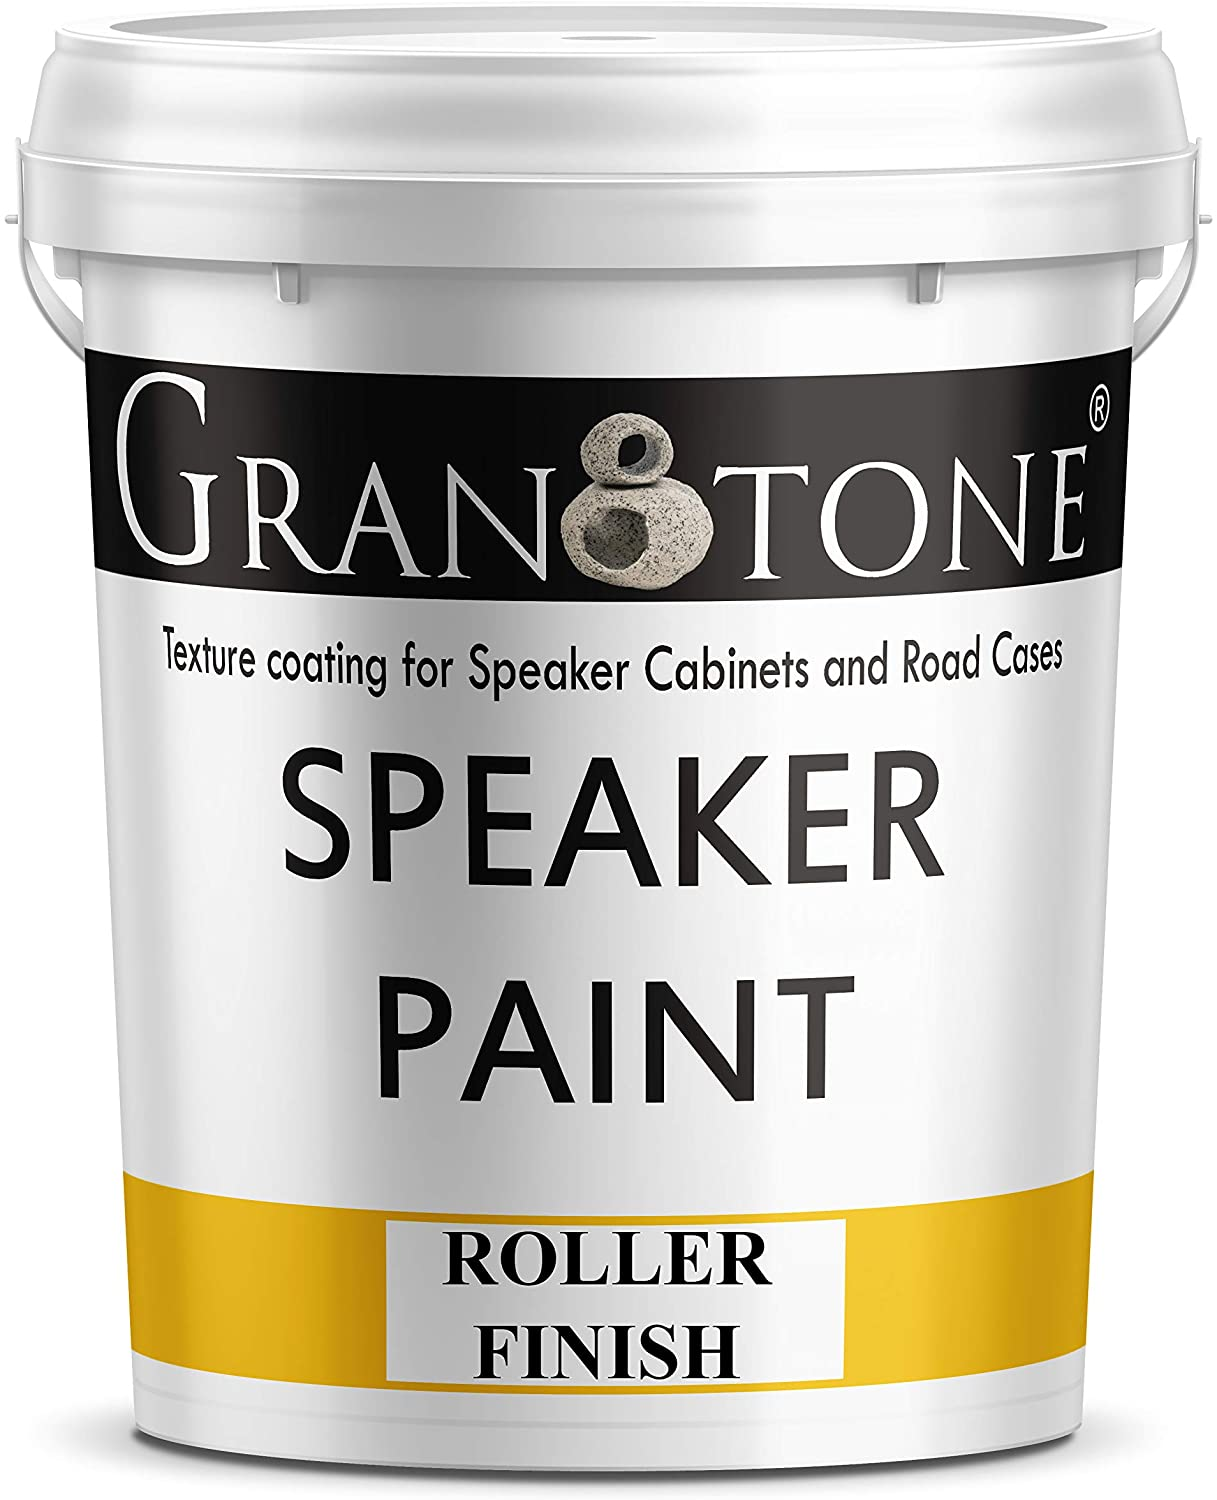 Granotone Speaker Paint Black 1 Gallon Texture Coating for Speaker Cabinets, Road Cases, Metal & Furniture, Roller Application, Water-Based